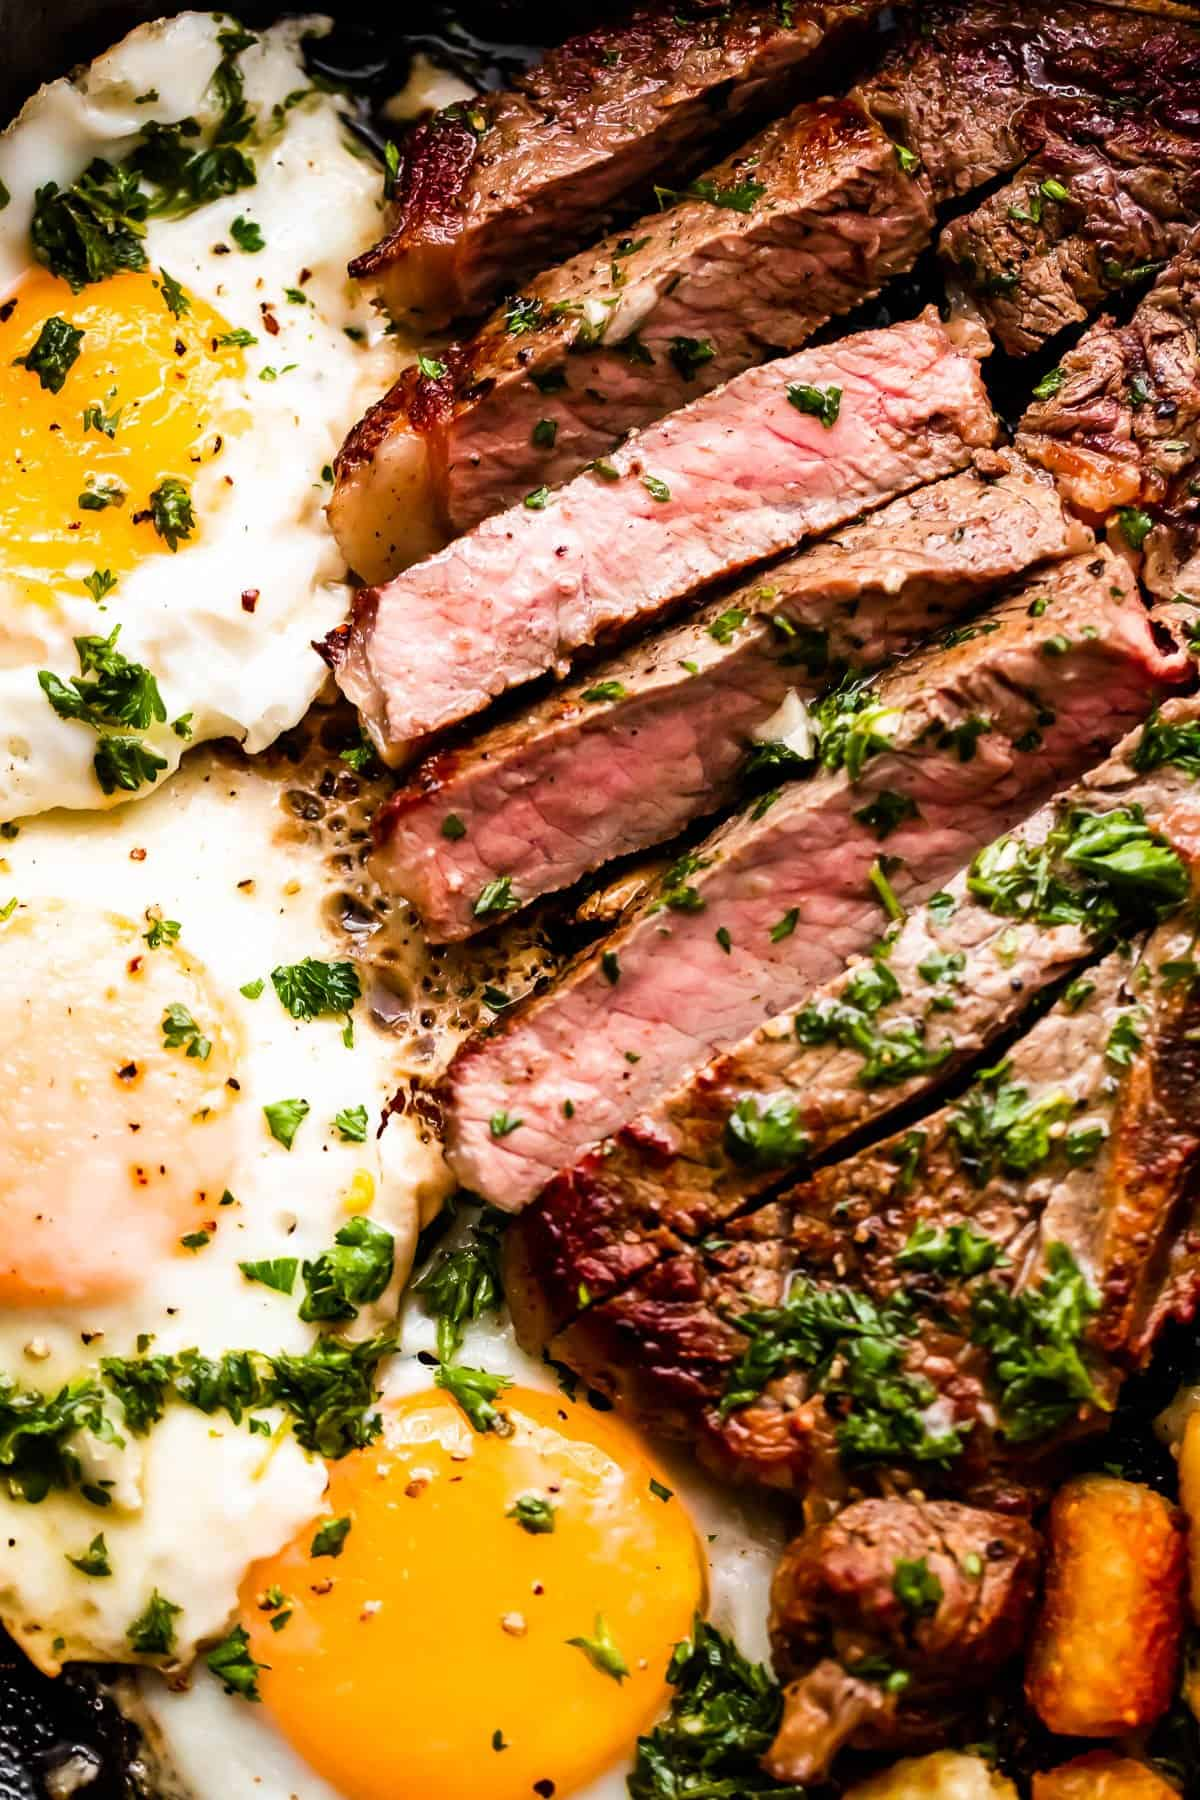 close up shot of t-bone steak cut in slices and served next to three eggs cooked over easy .